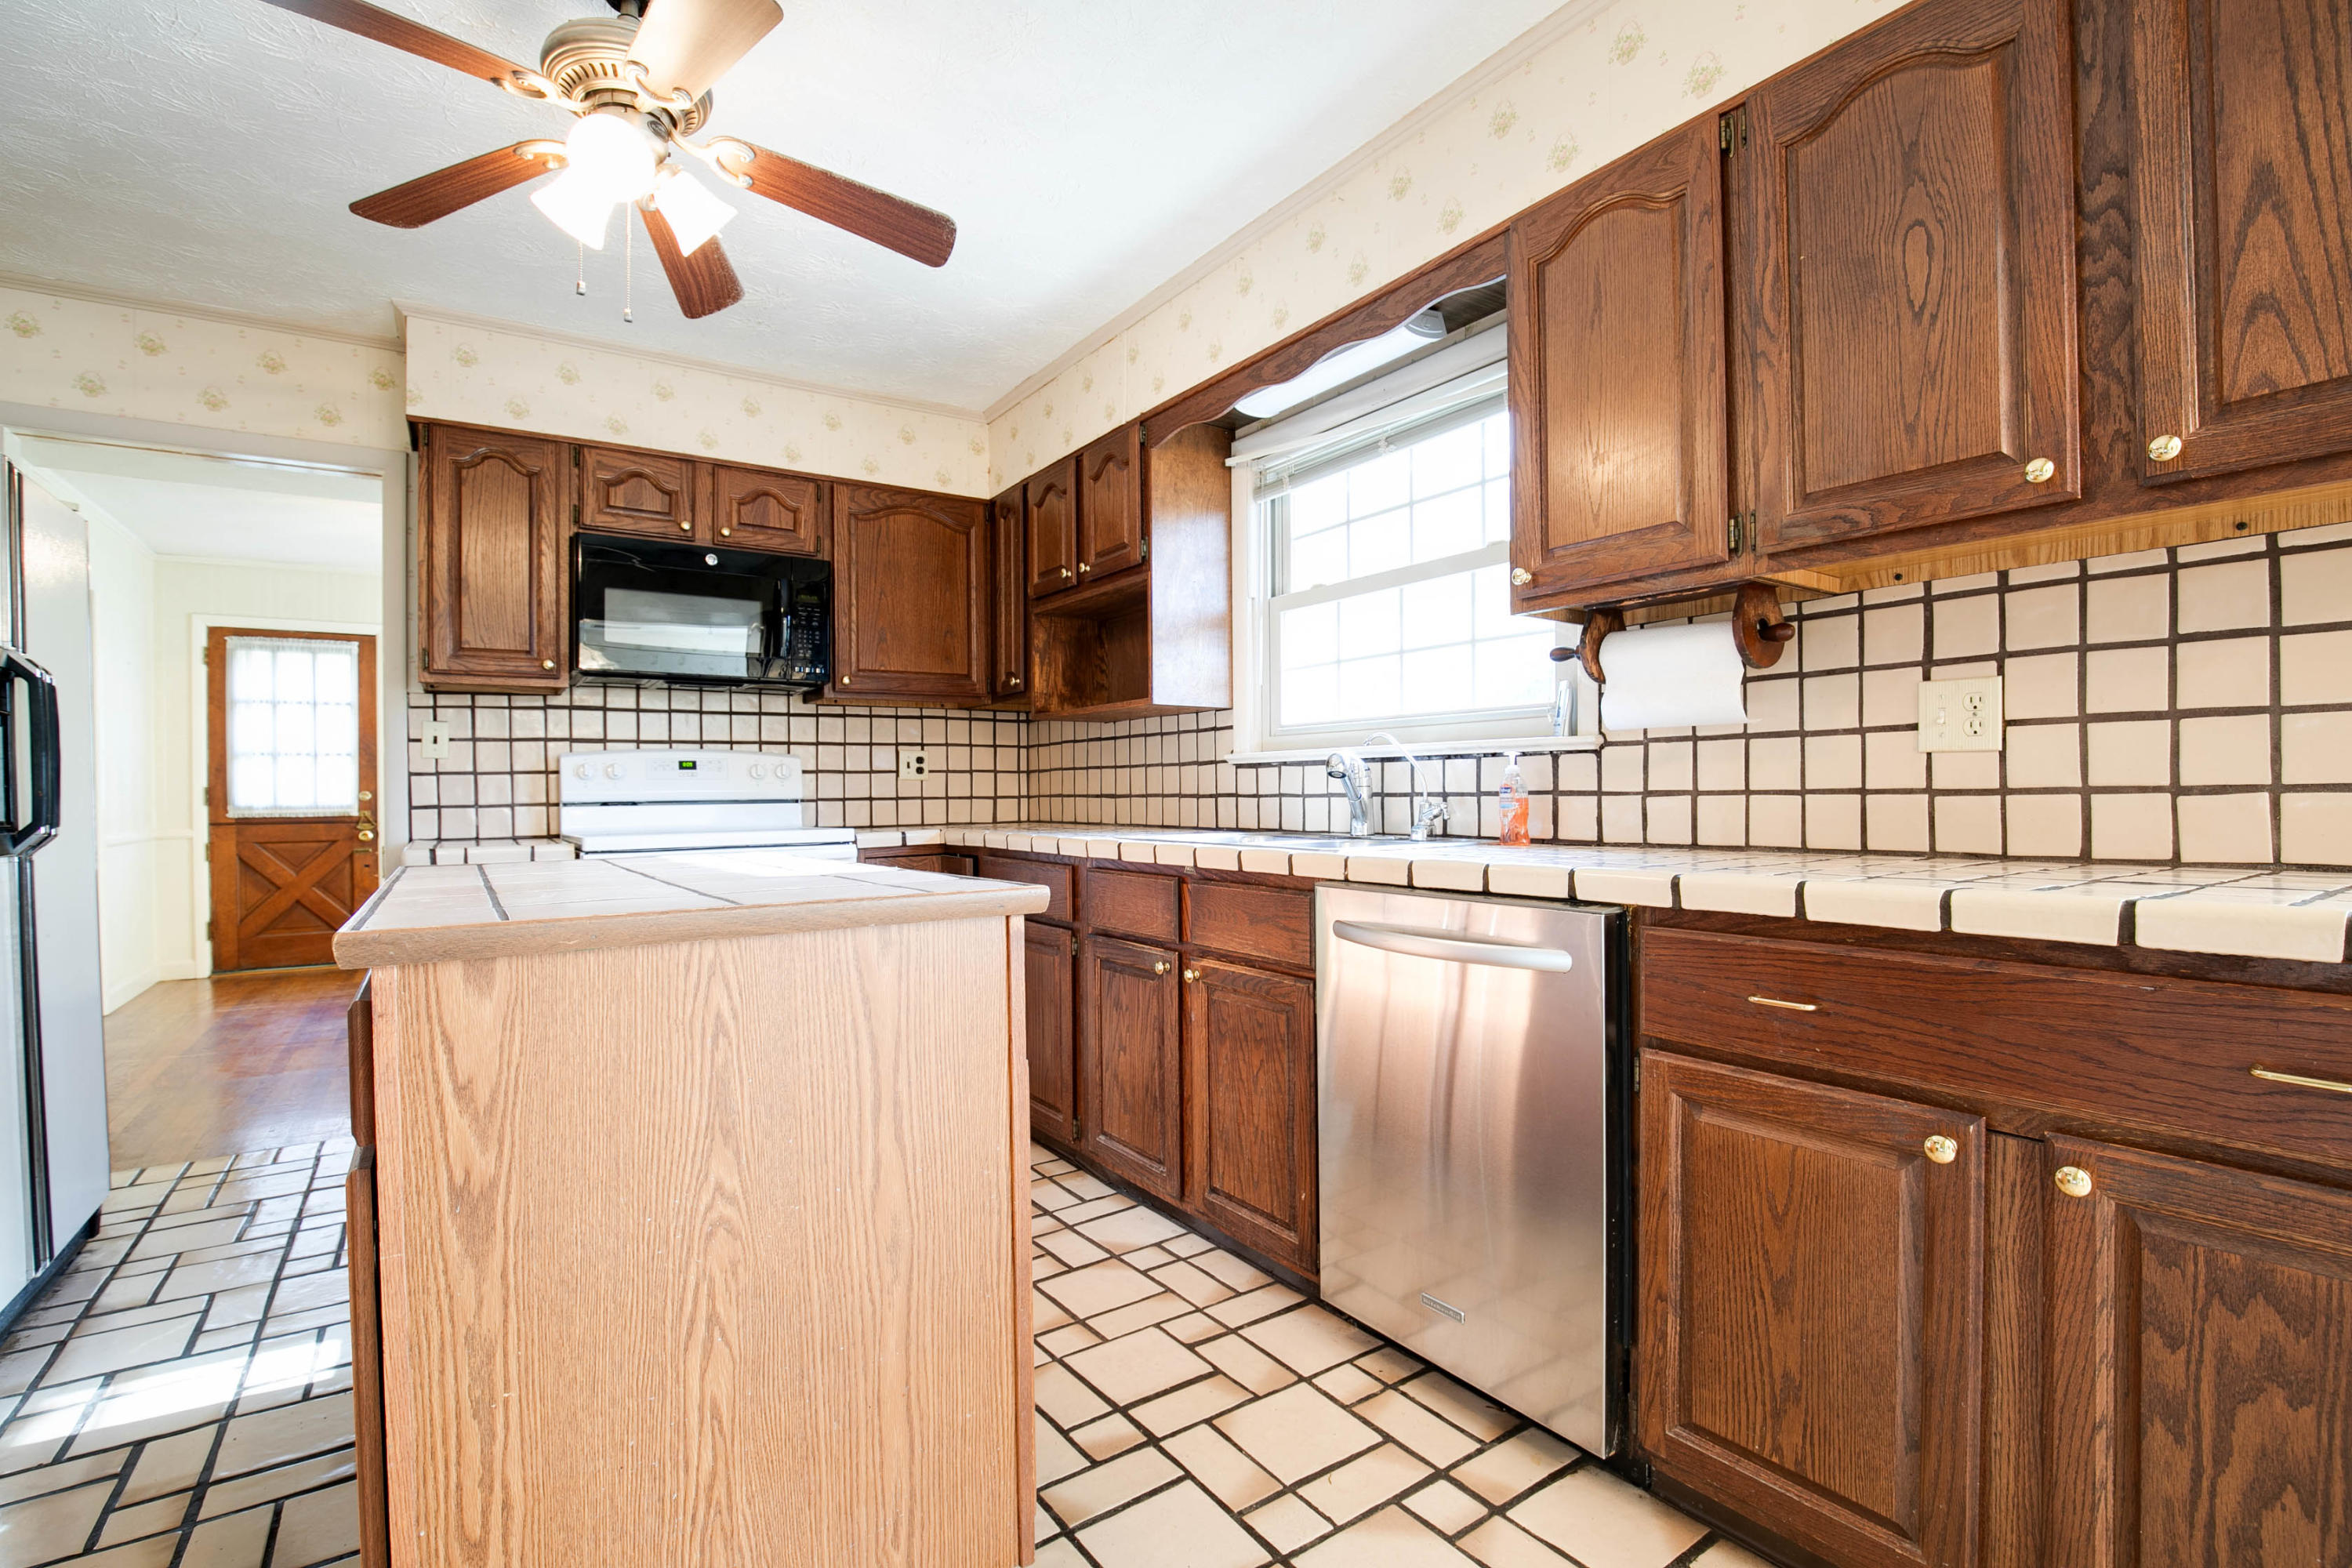 1409 Rotherwood Drive, Johnson City, Tennessee 37601, 4 Bedrooms Bedrooms, ,4 BathroomsBathrooms,Single Family,For Sale,1409 Rotherwood Drive,9920587